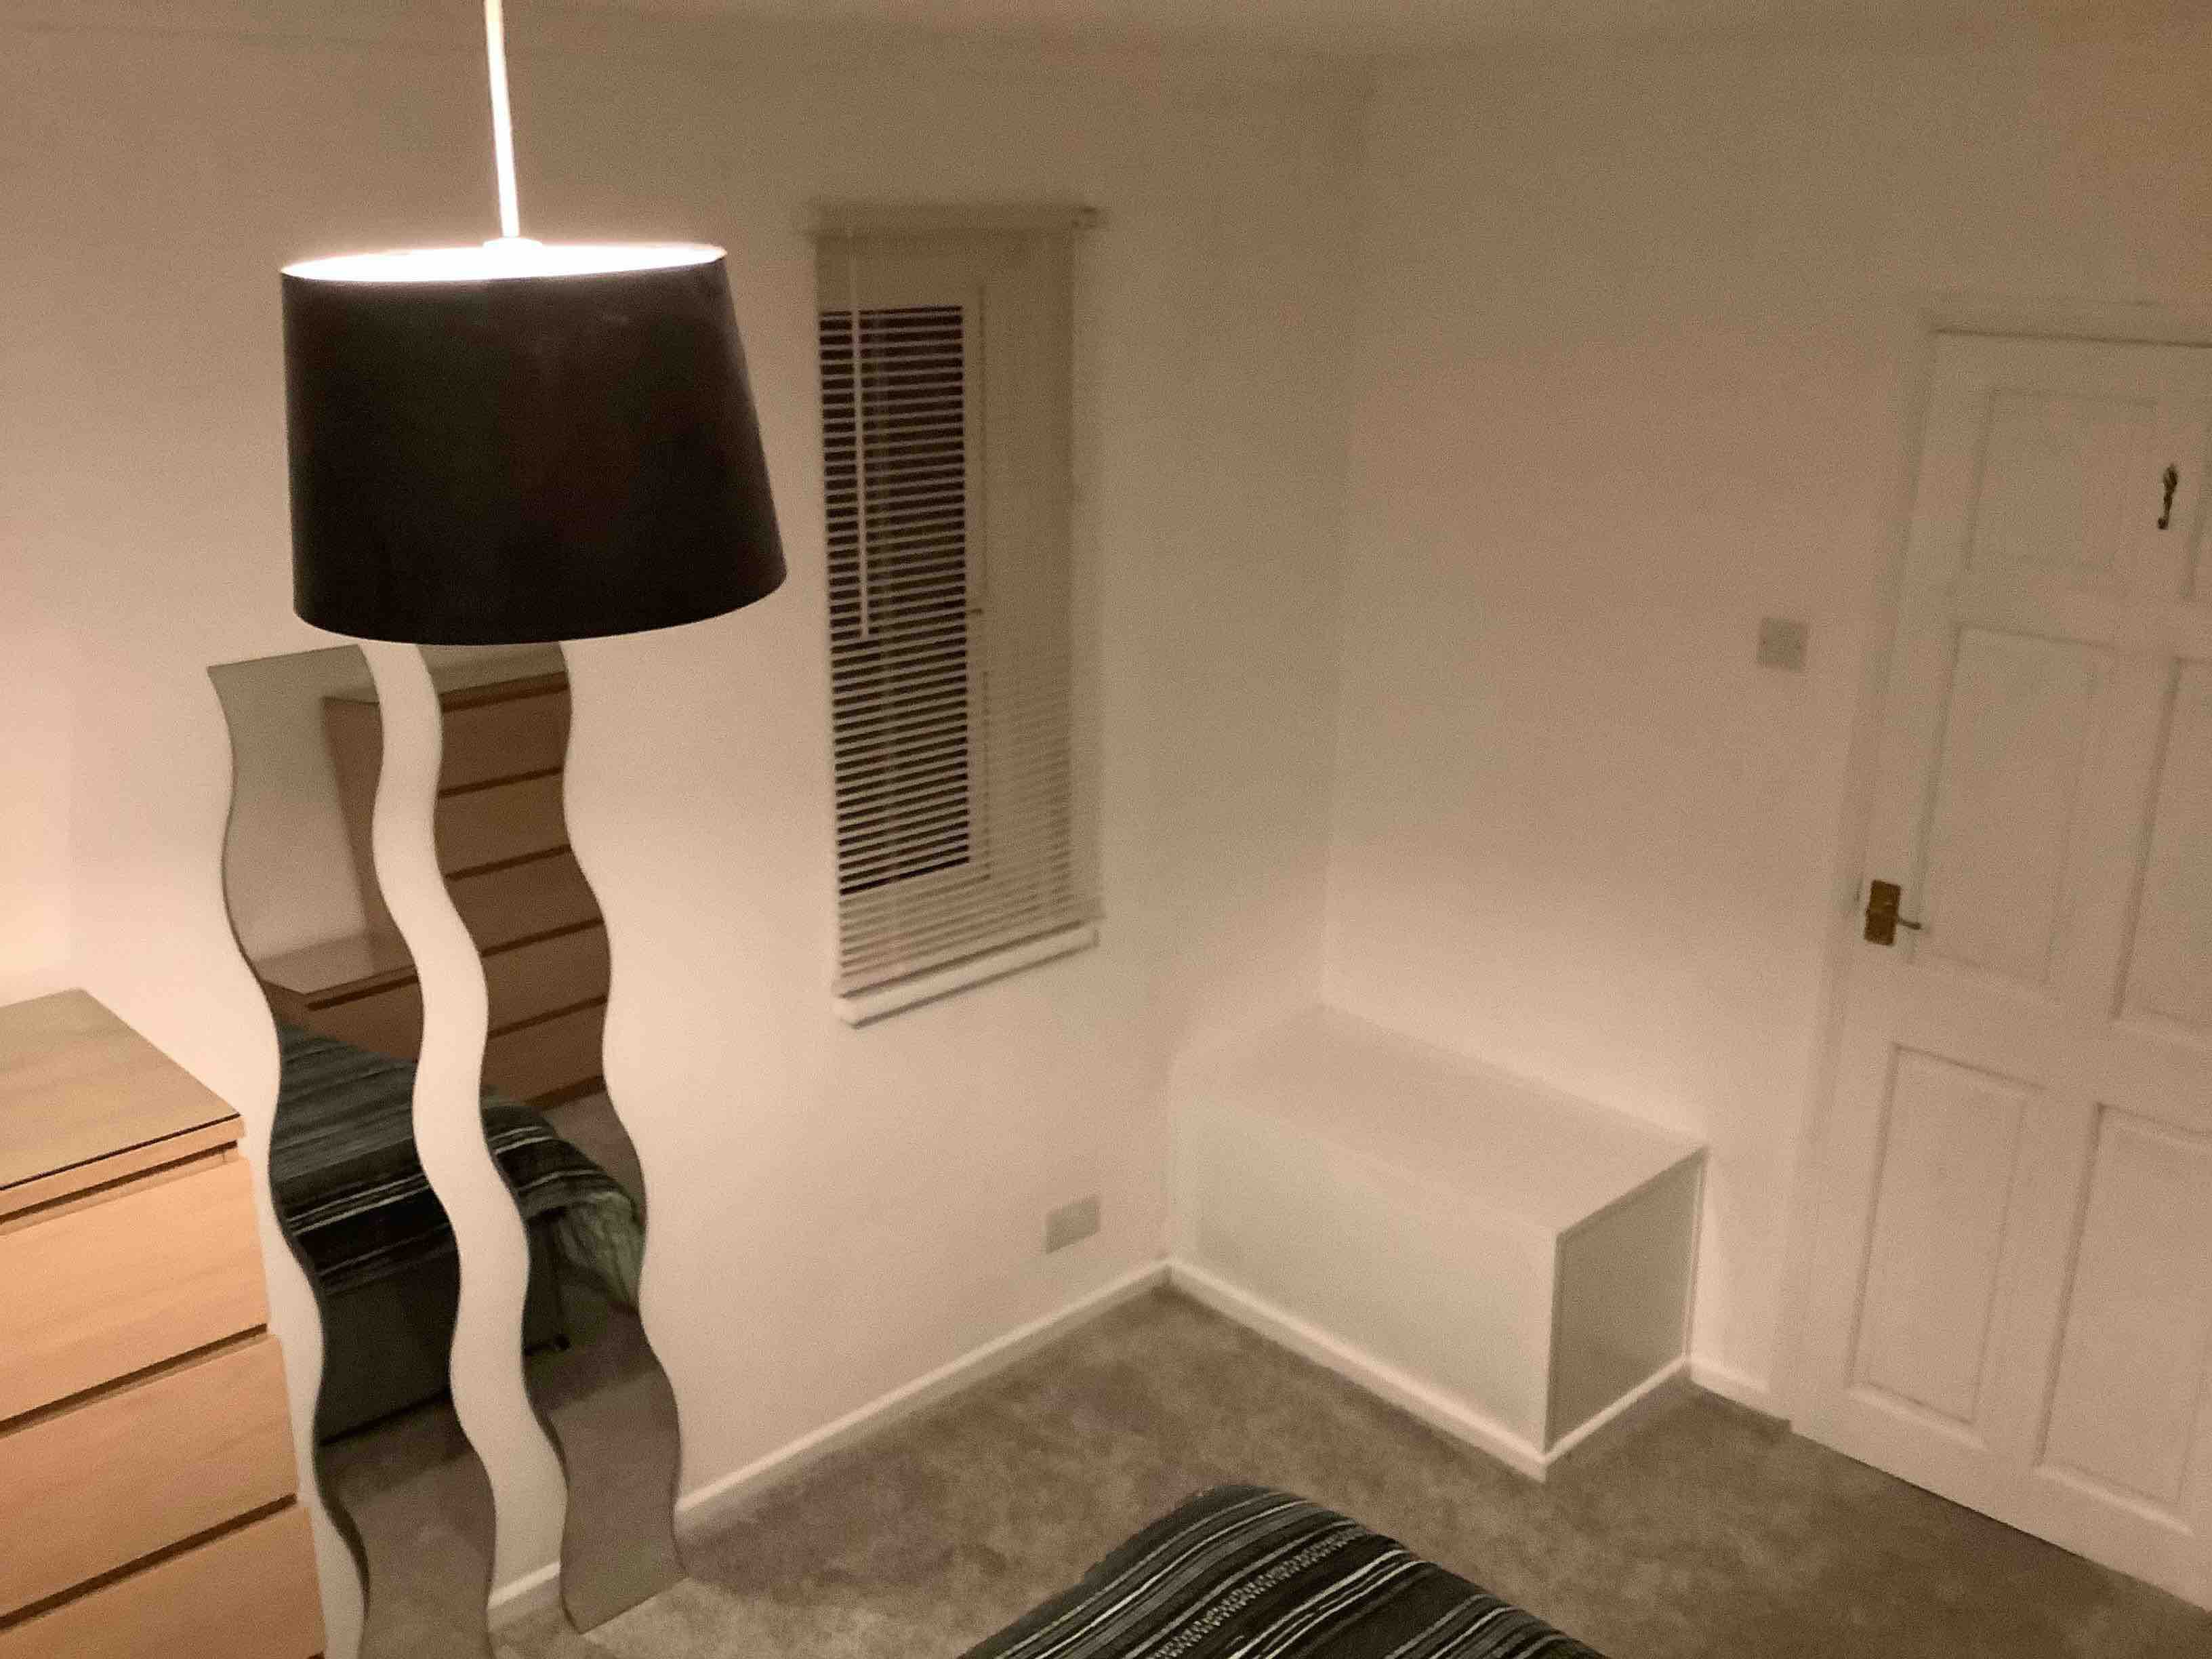 1 room in West Green, Crawley, RH11 7JG RoomsLocal image